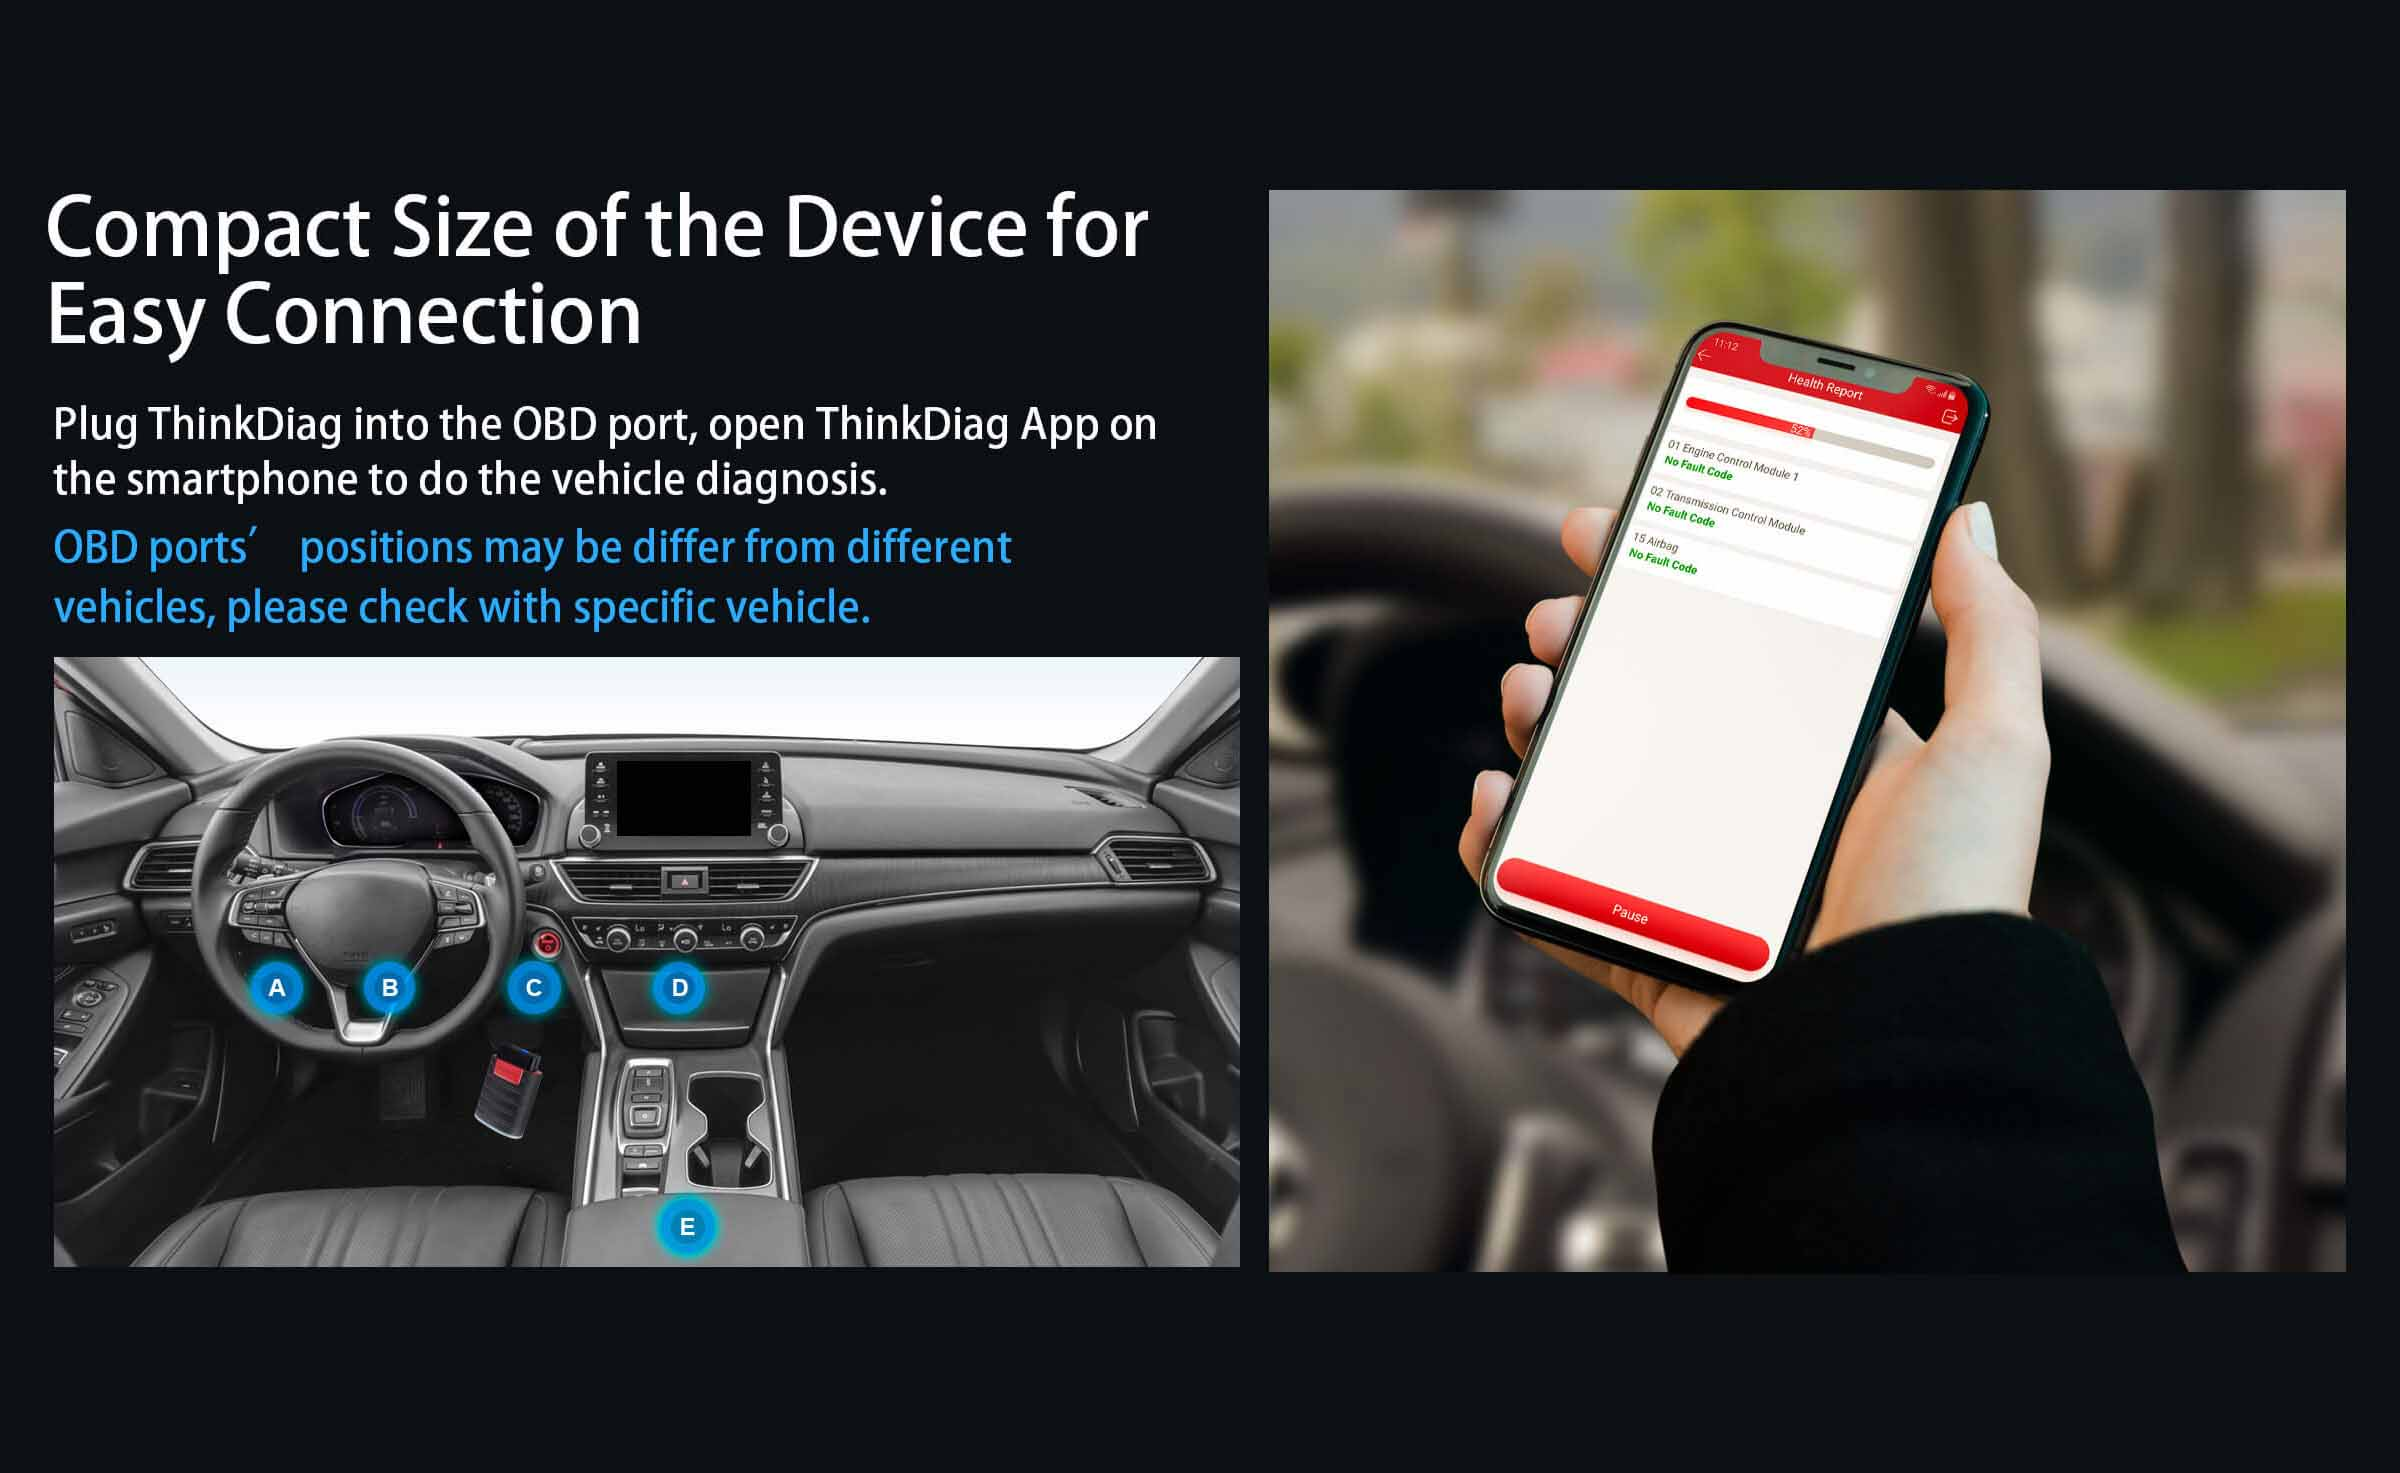 Compact Size Of The Thinkdiag Device For Easy Connection Plug ThinkDiag into the ODB port,Open Thinkdiag app on smartphone to do the vehicle diagnostics.